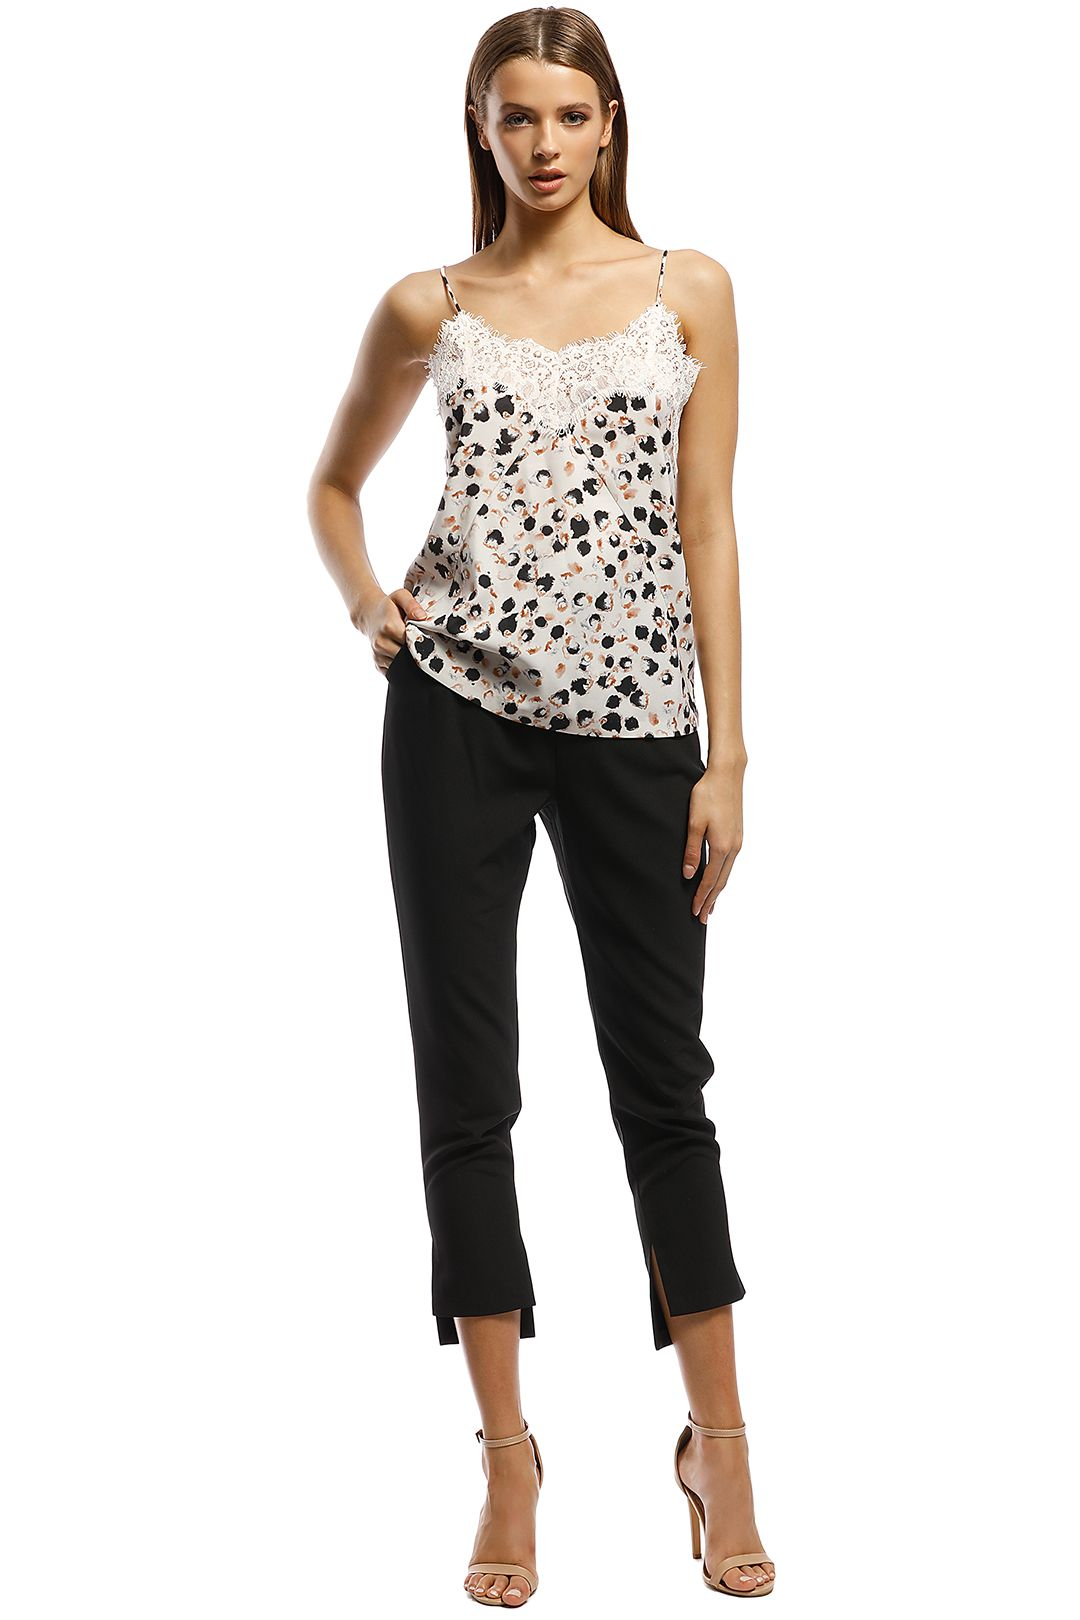 Grace Willow - Sid Cami - Spot Multi - Front